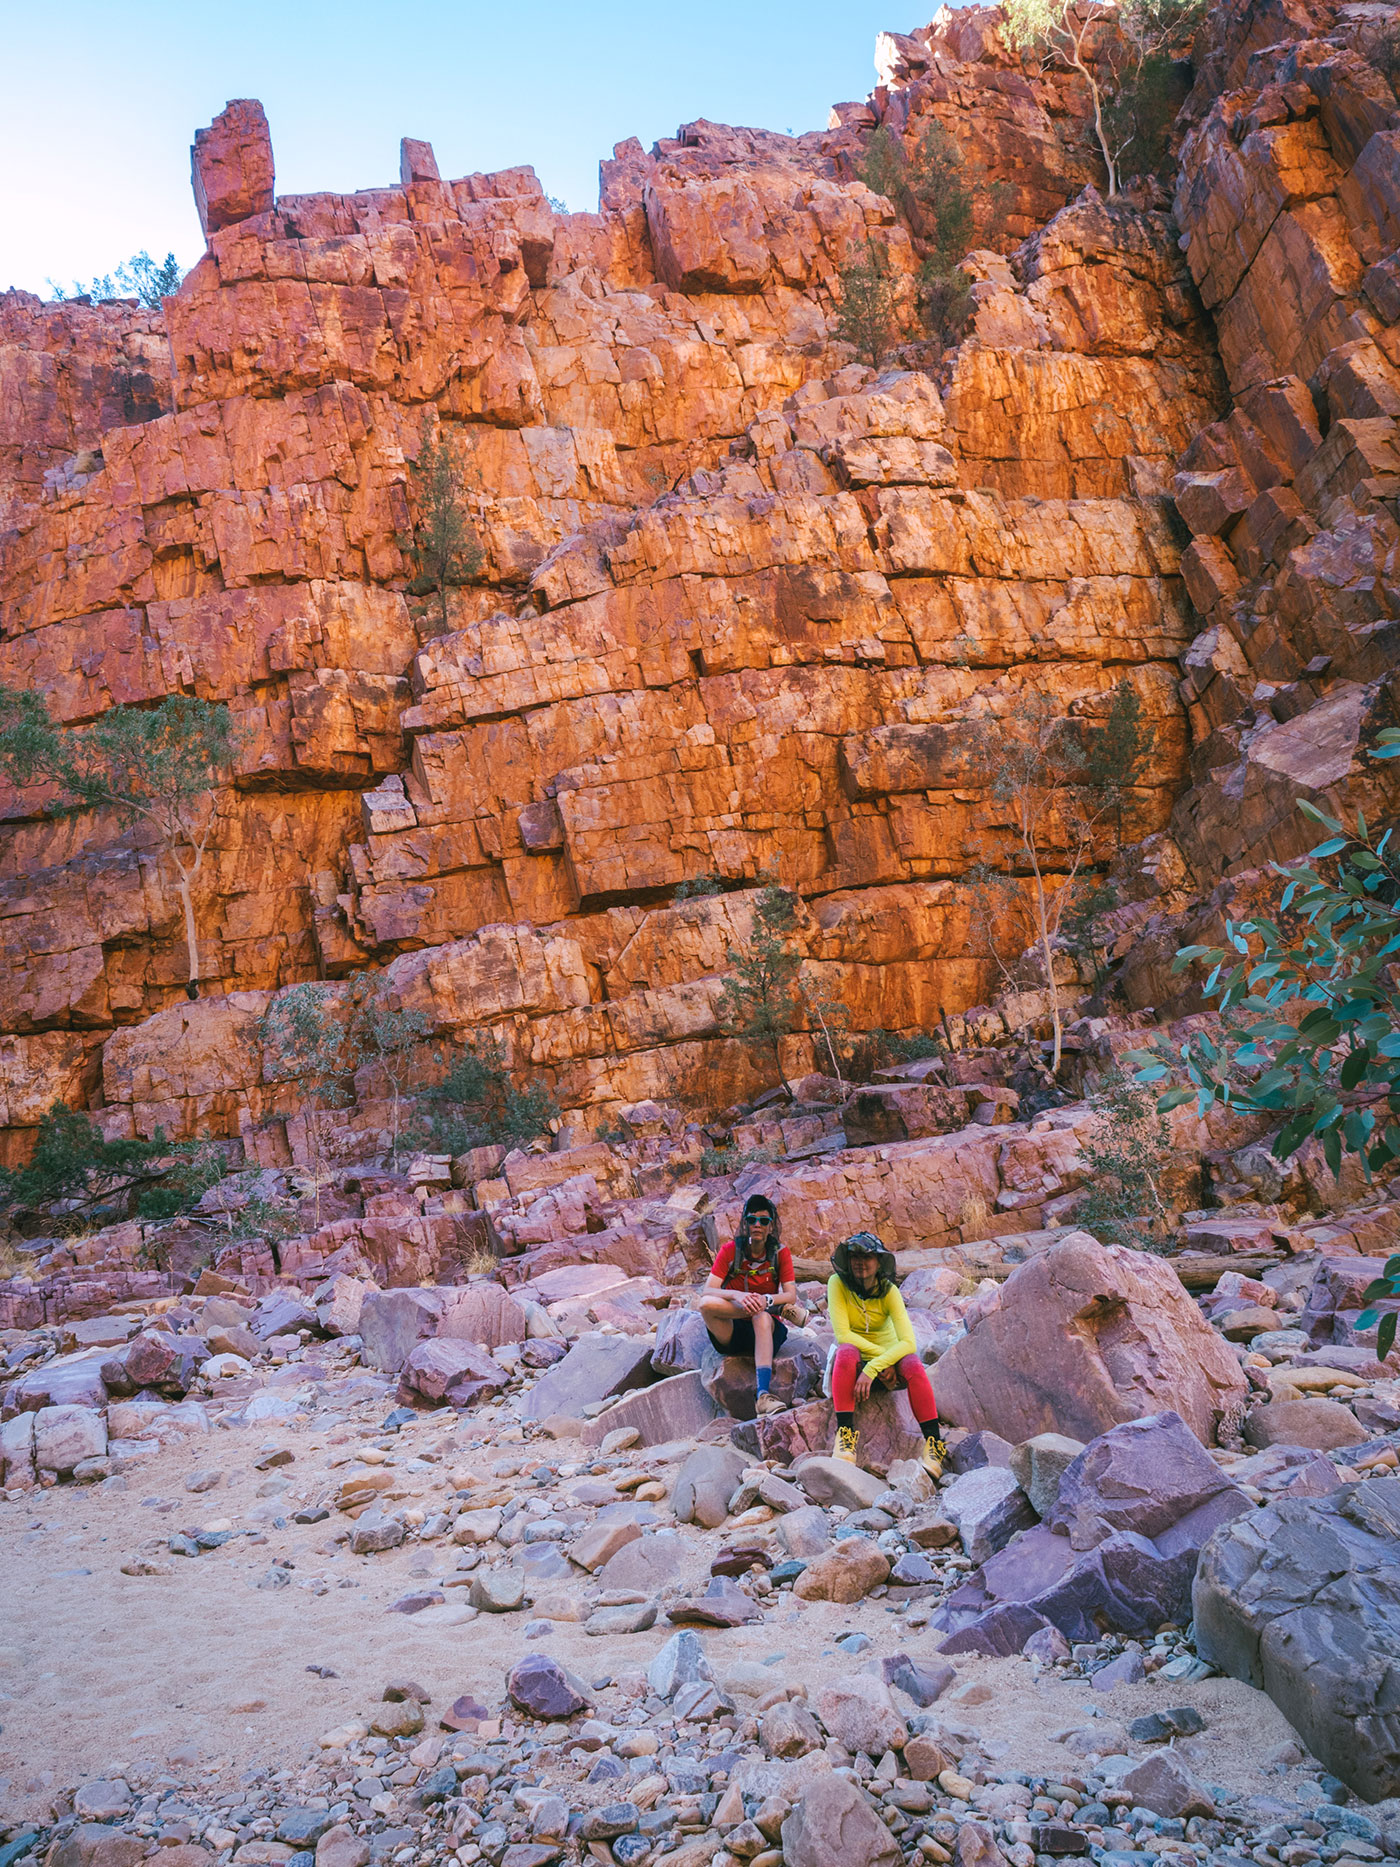 My colourful friends with the boulders acting cool at Ormiston Gorge